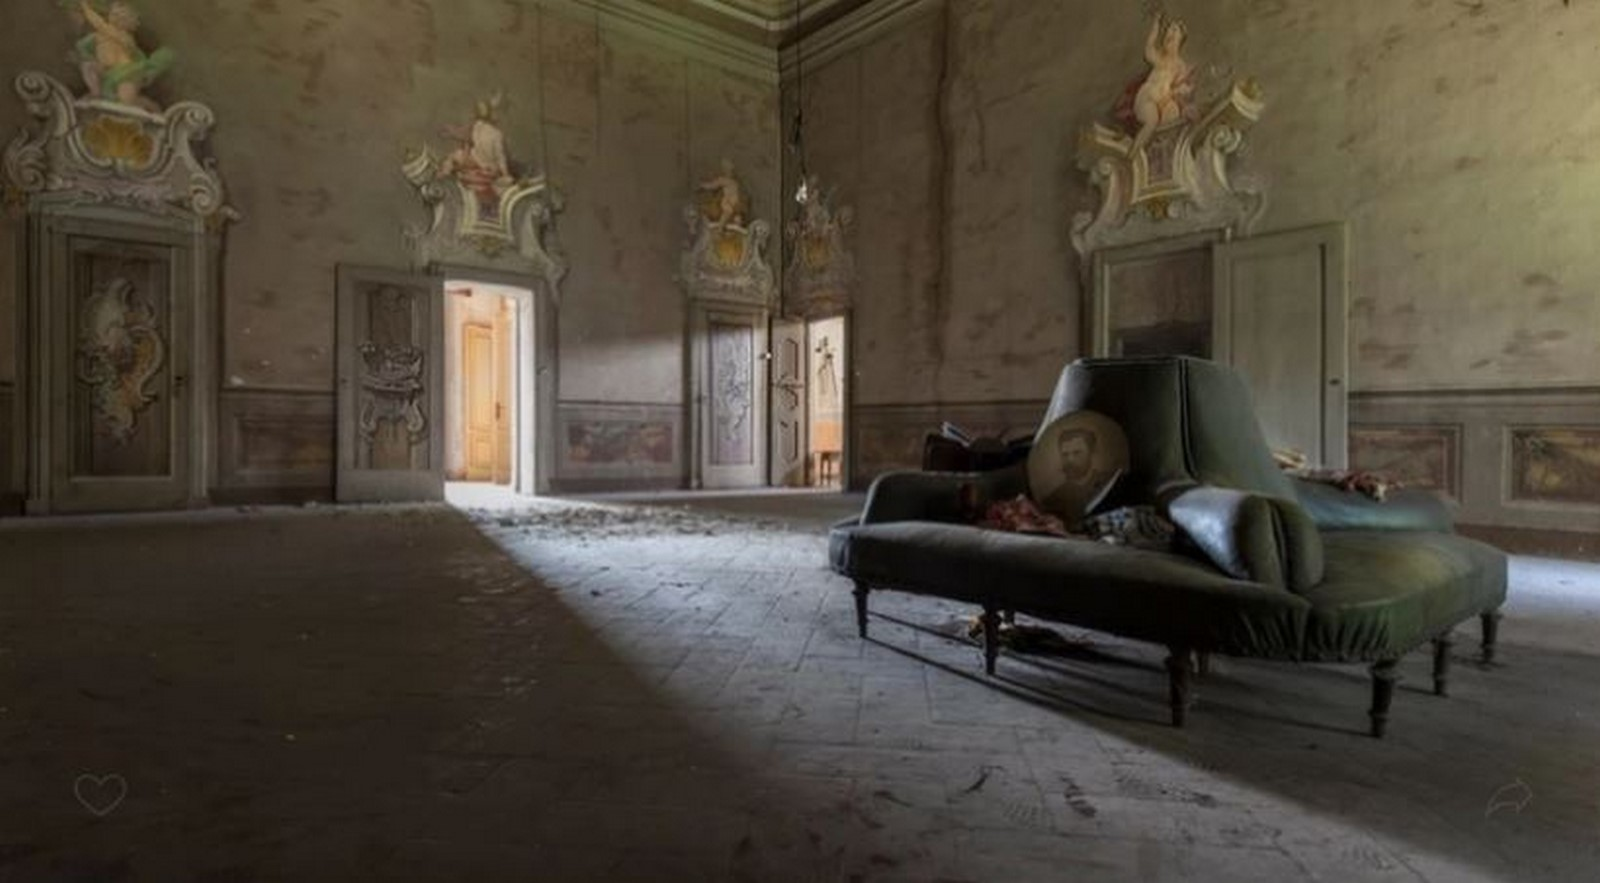 Abandoned places scattered through Italy, E. Costi - Sheet2